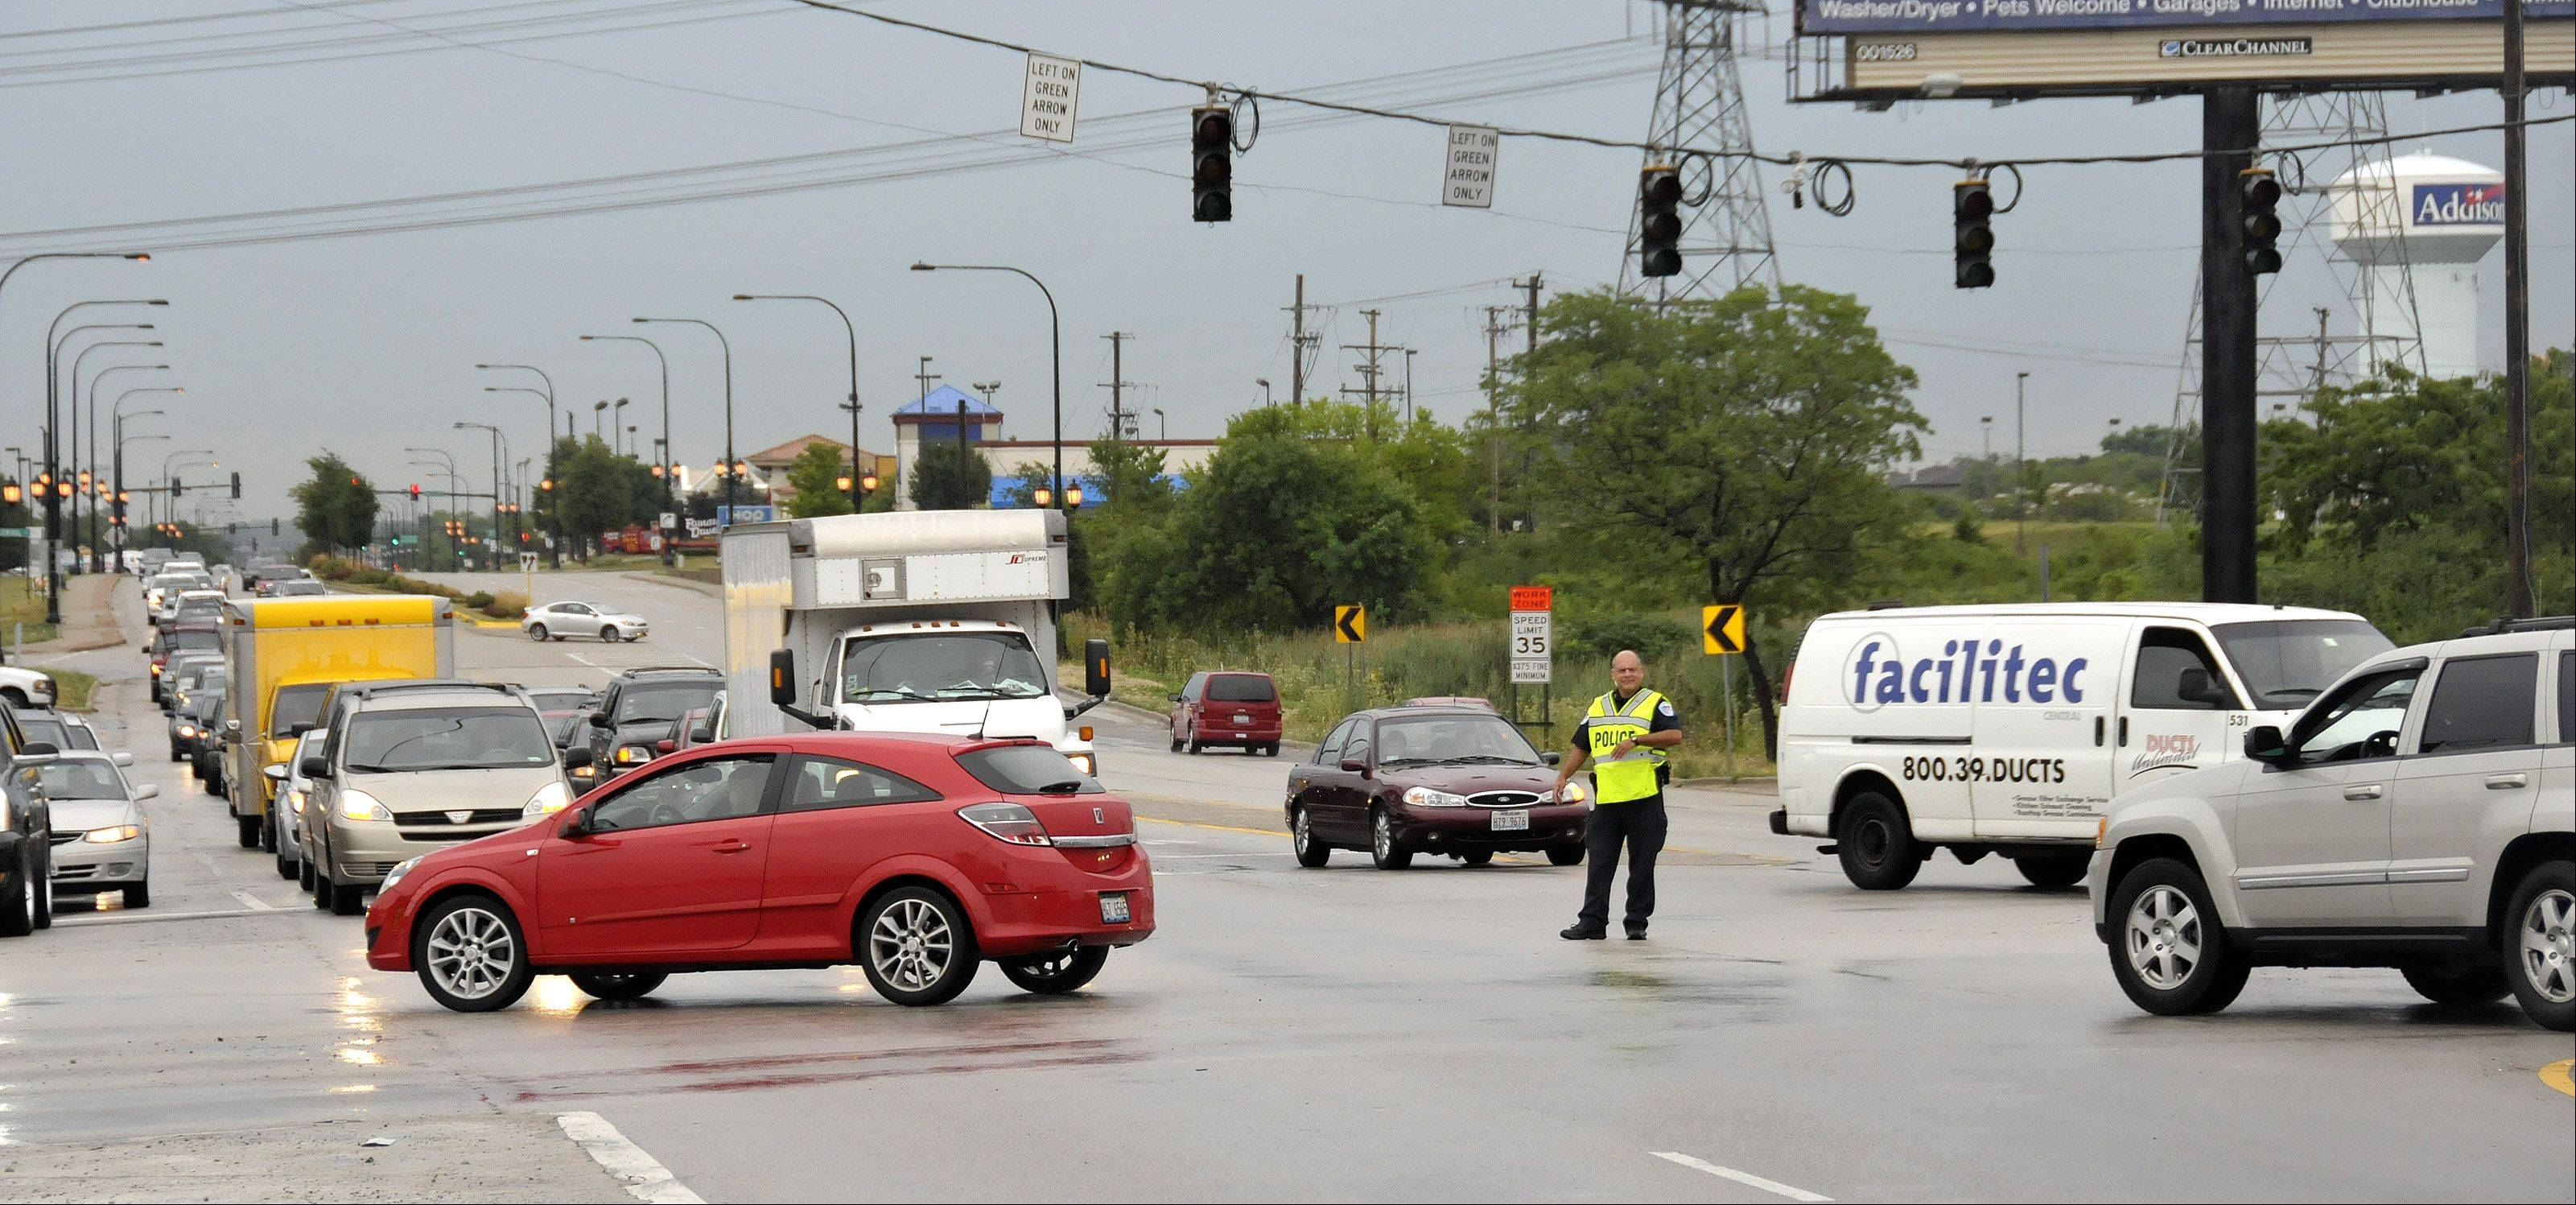 With traffic backing up and the power out, police officers direct traffic at Lake Street and Route 53 in Addison following a strong storm that hit the area Tuesday morning.